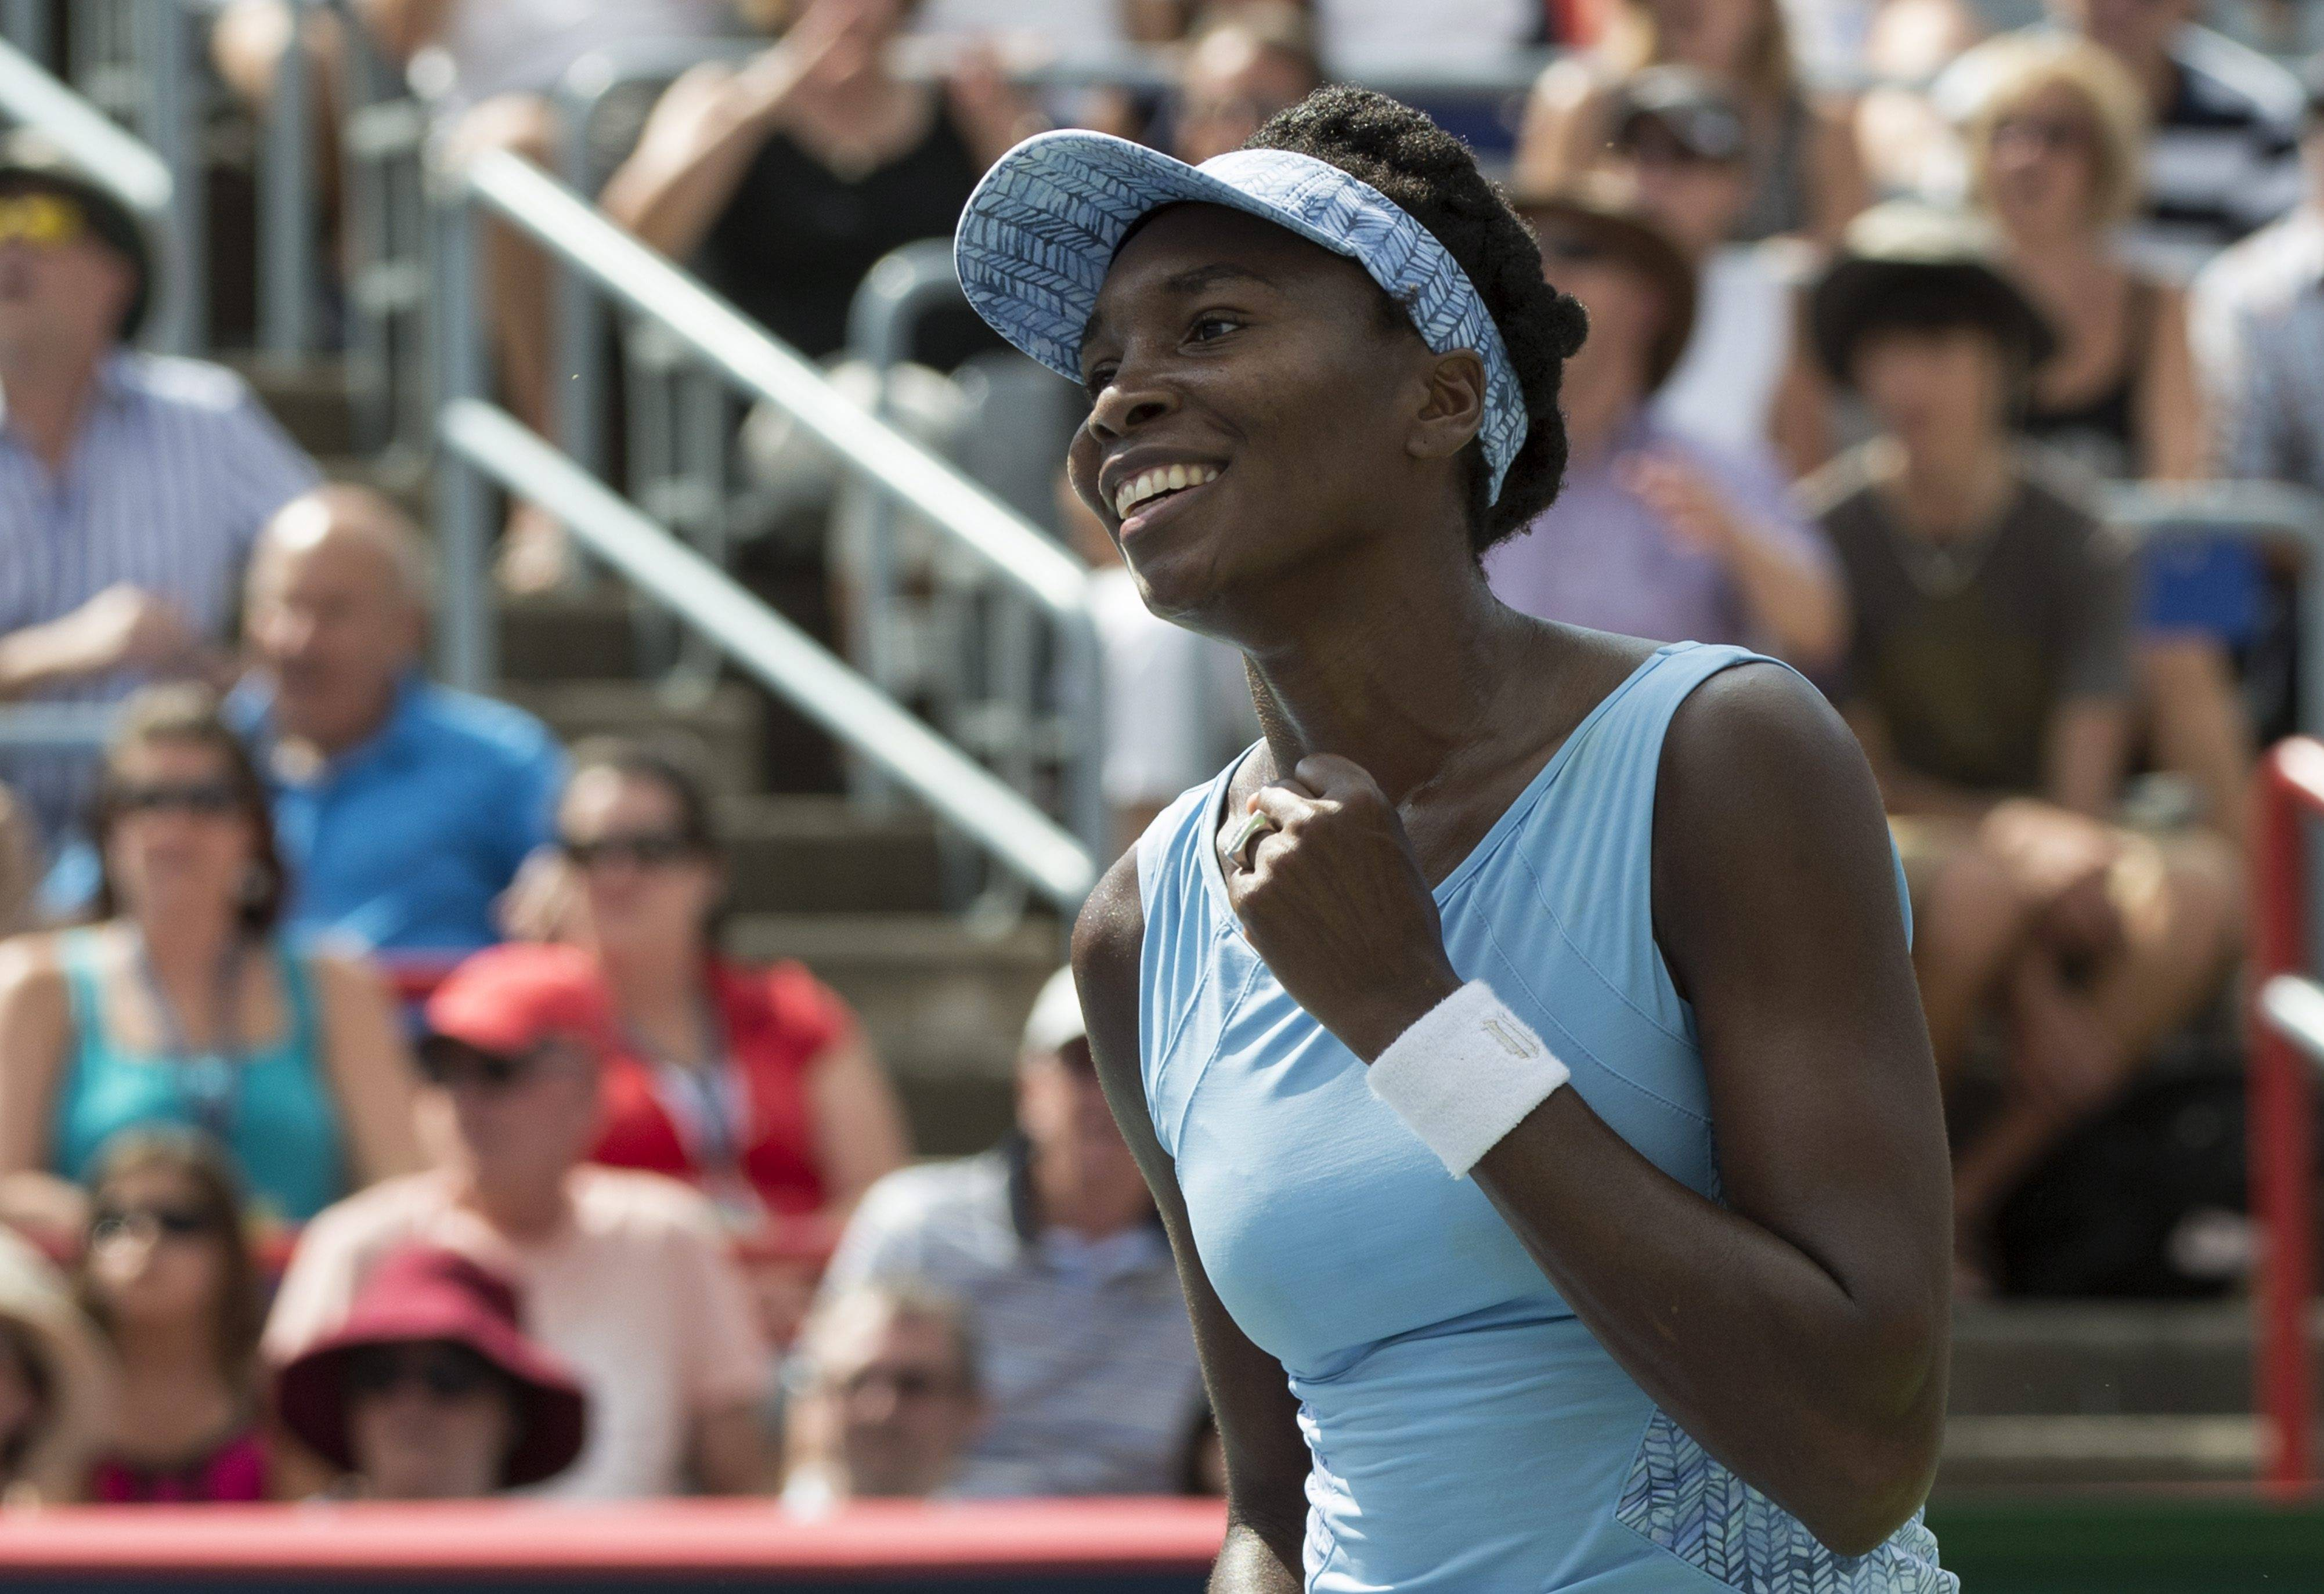 Venus Williams of the United States celebrates after beating her sister Serena 6-7, 6-2, 6-3 during semifinal play at the Rogers Cup tennis tournament Saturday, Aug. 9, 2014 in Montreal.